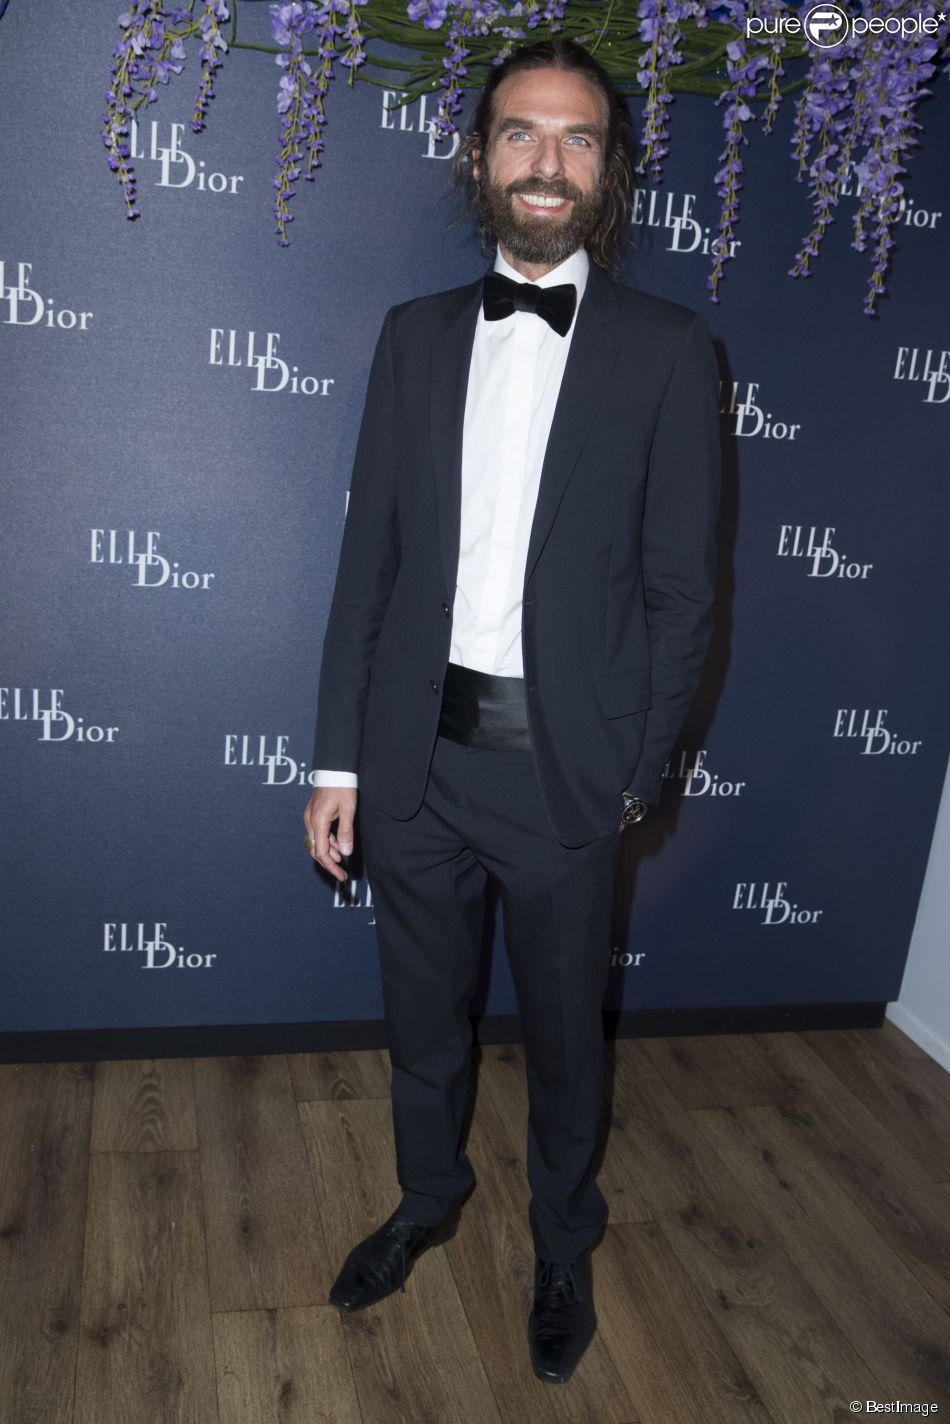 John Nollet at Dior & ELLE event at Cannes 2014 (Photography: BestImage via purepeople.com)